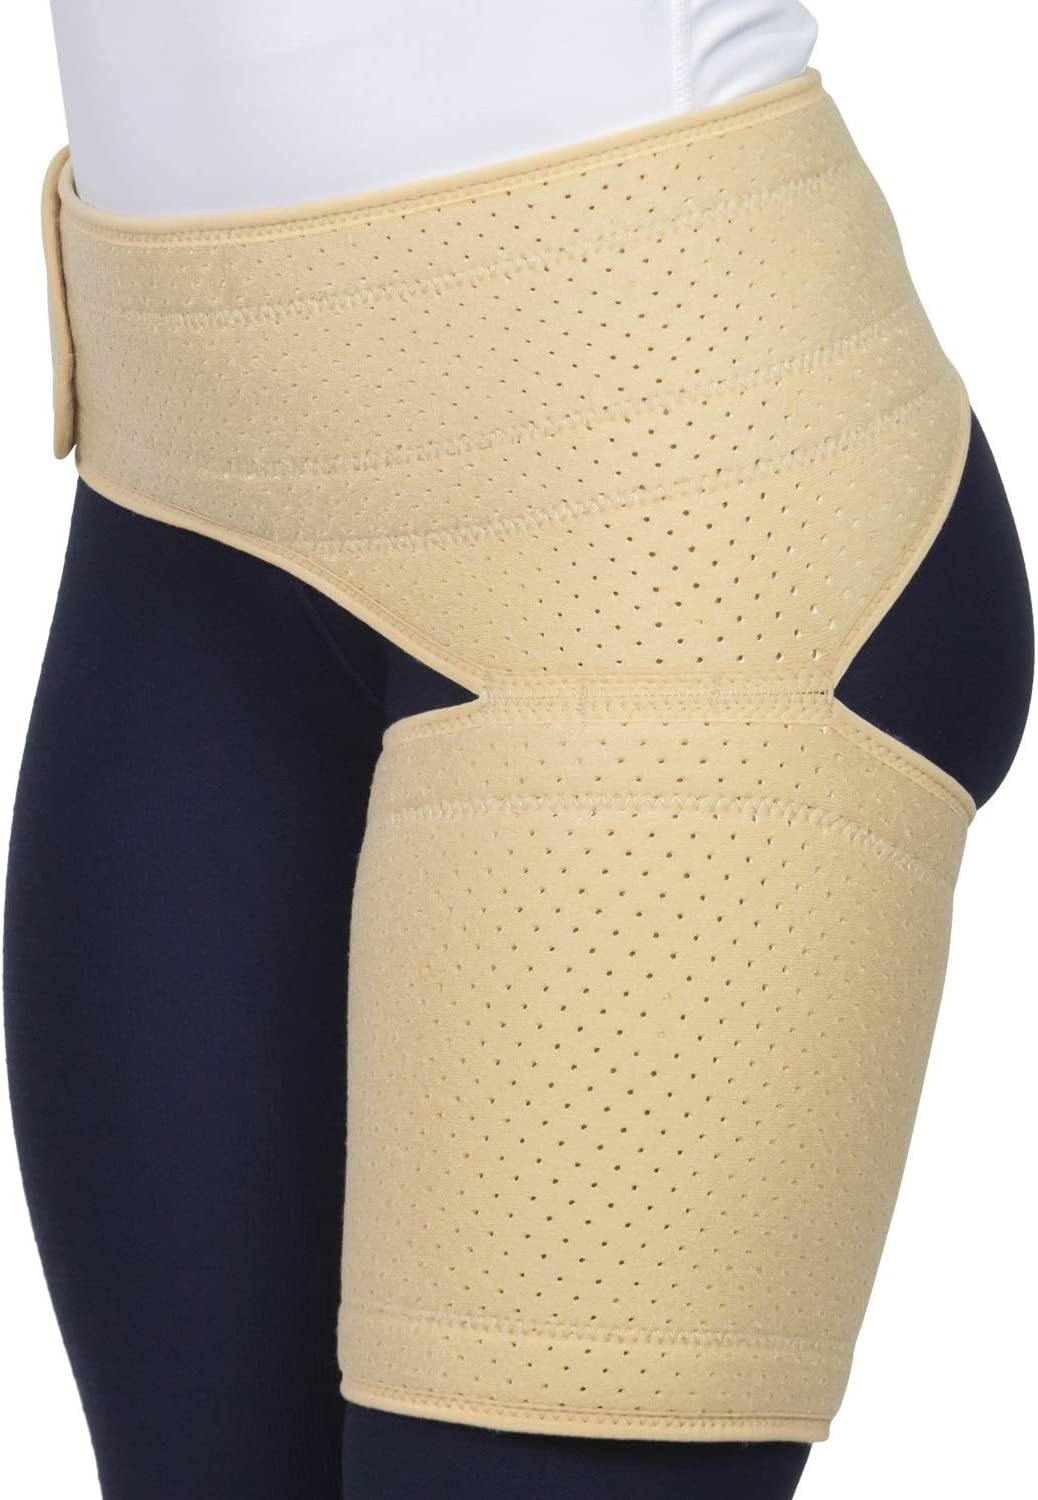 Vive Groin Brace - Sciatica We OFFer at cheap prices Hip for Compression Wrap All items free shipping Support N